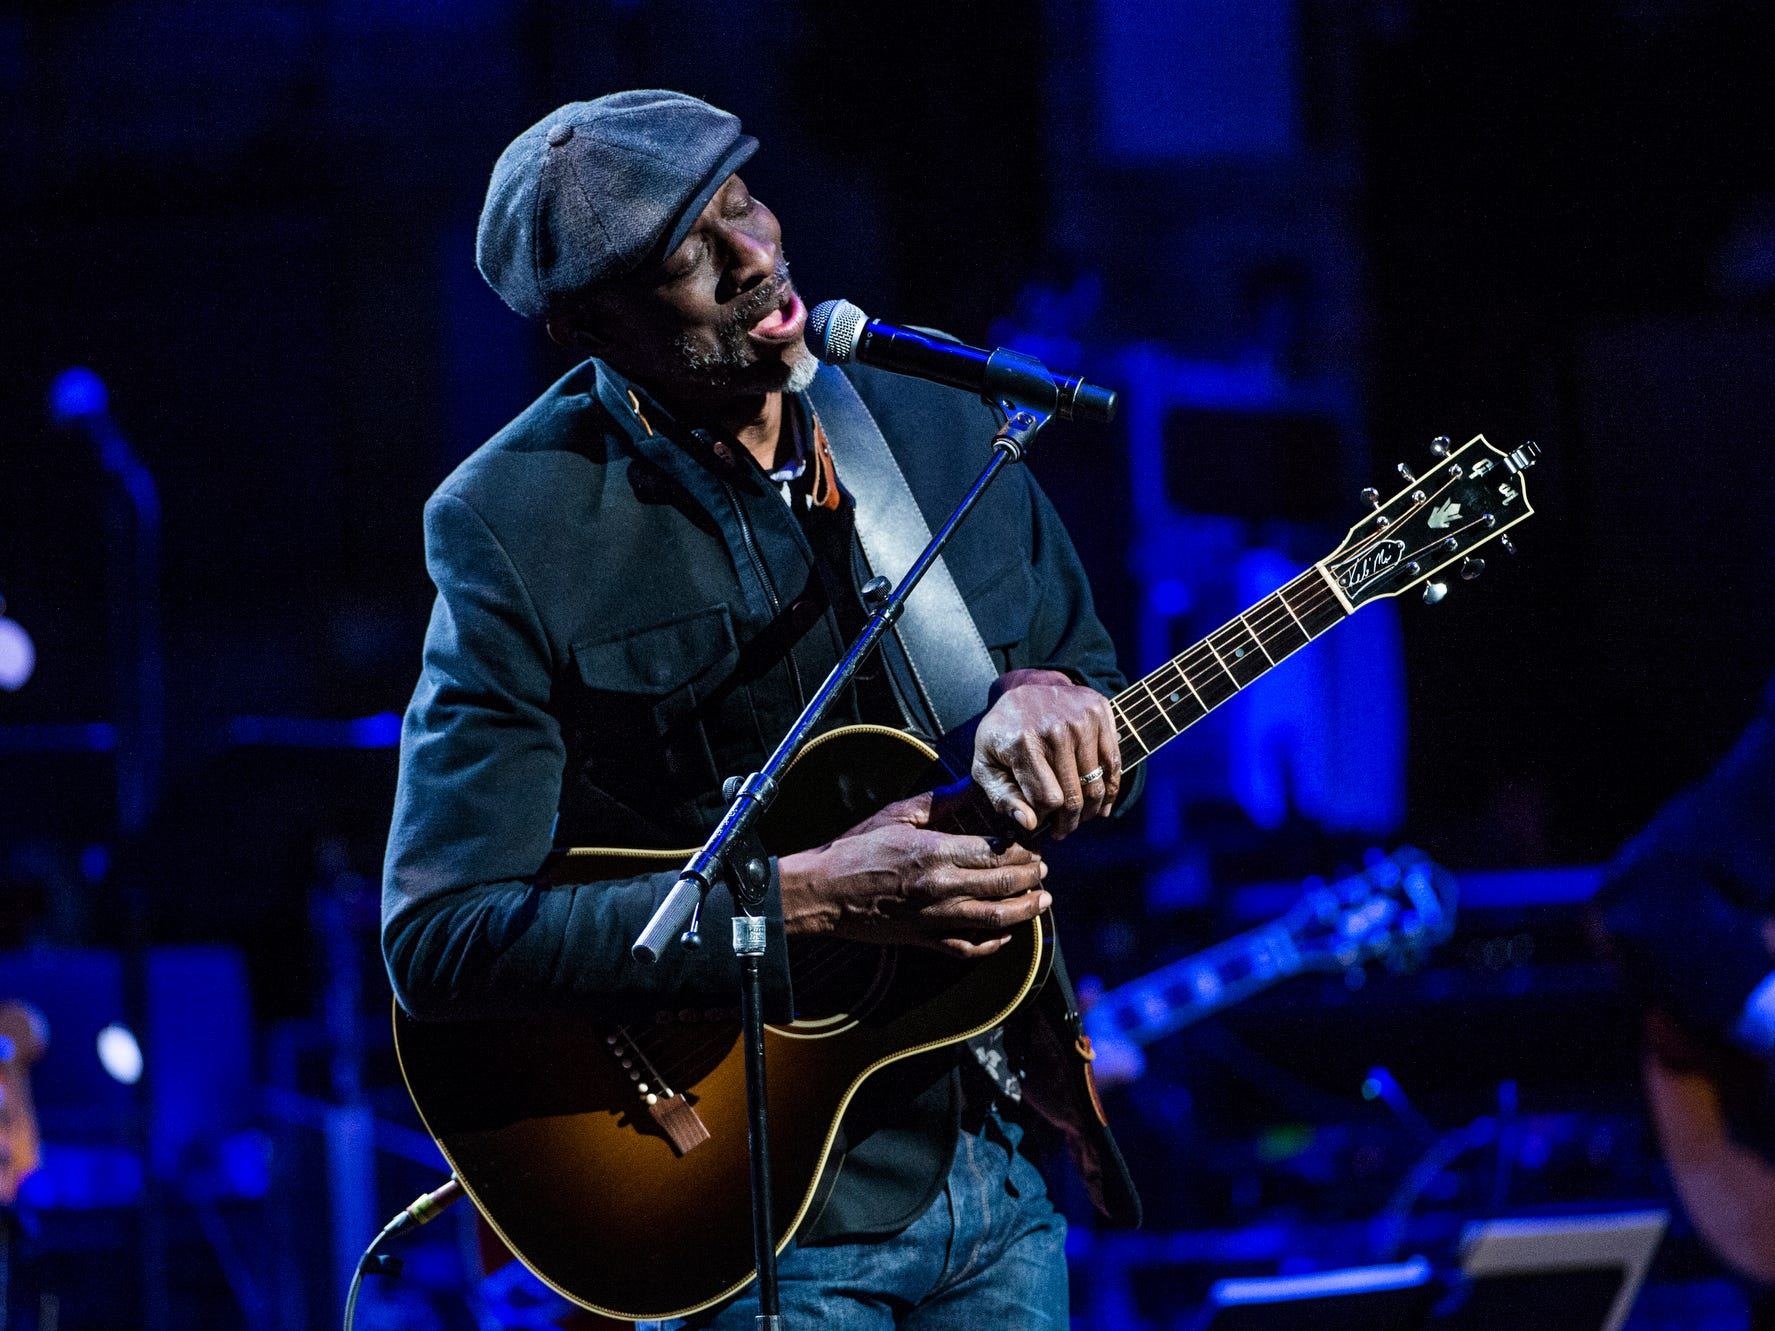 Dec. 1 OPRY AT THE RYMAN WITH KEB' MO': 7 and 9:30 p.m. Ryman Auditorium, $40-$99, ryman.com